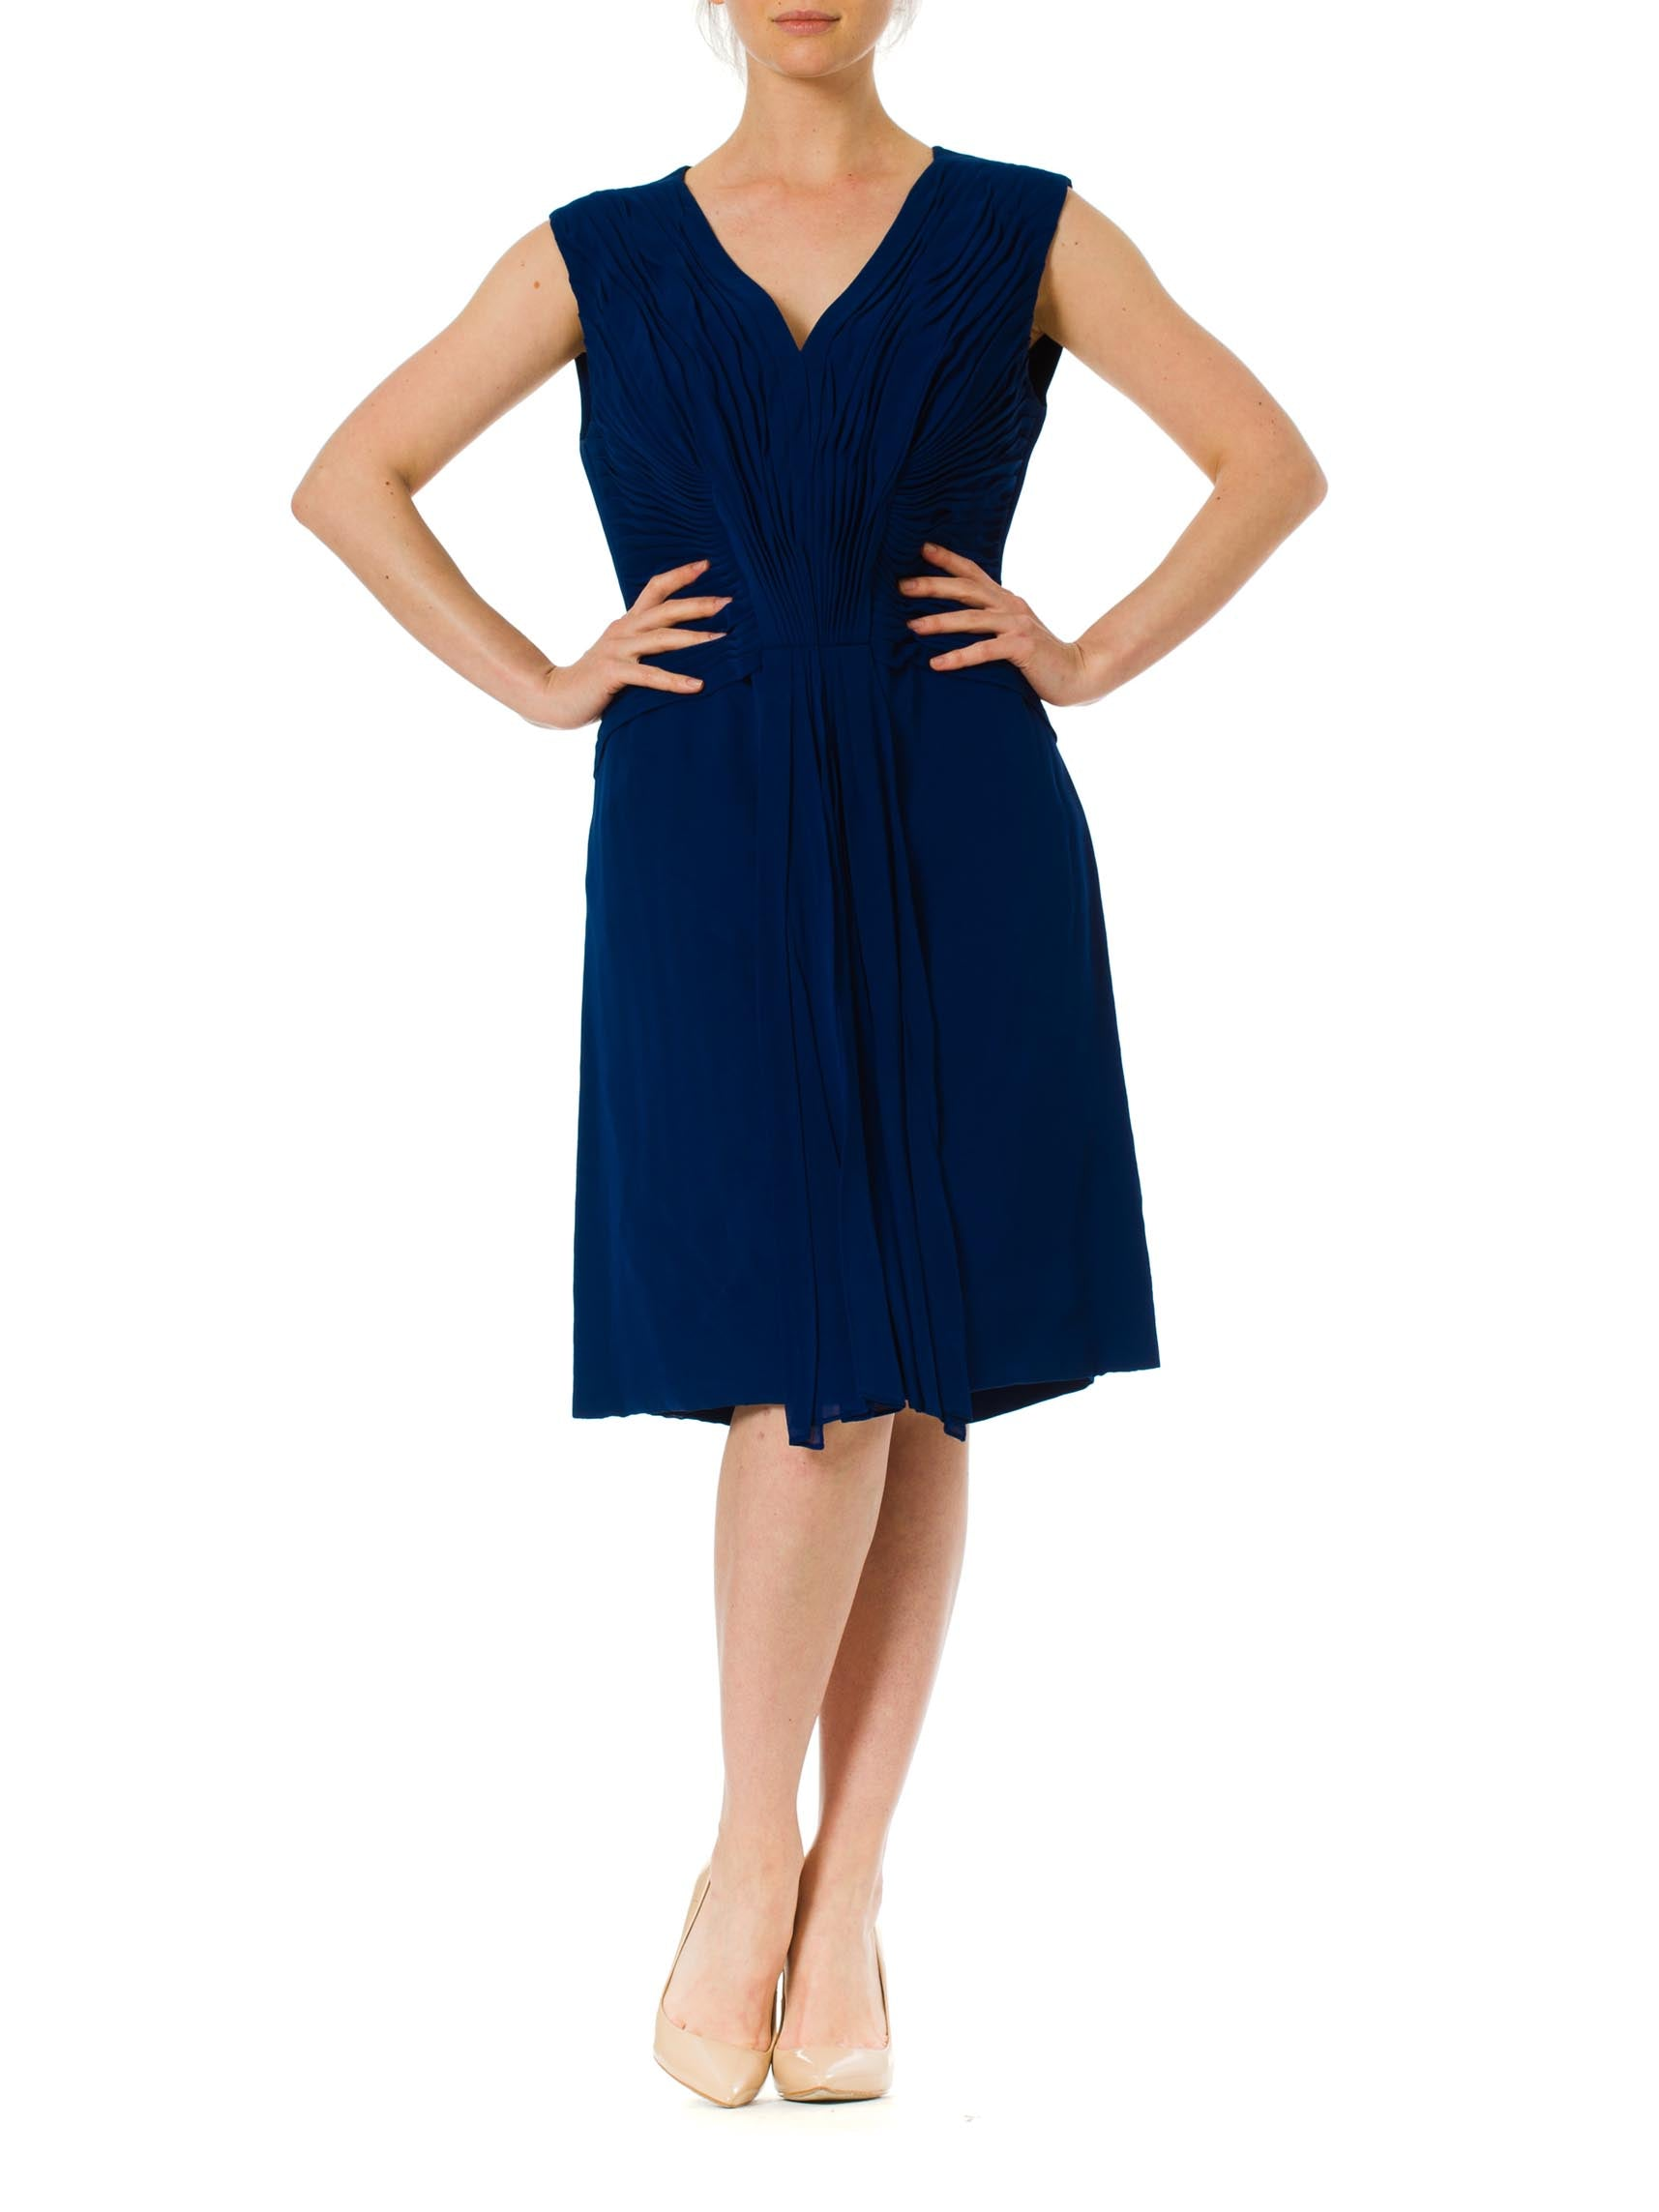 e50178501d7 1960s Style 1980s Structured Royal Blue Hand Pleated Cocktail Dress ...